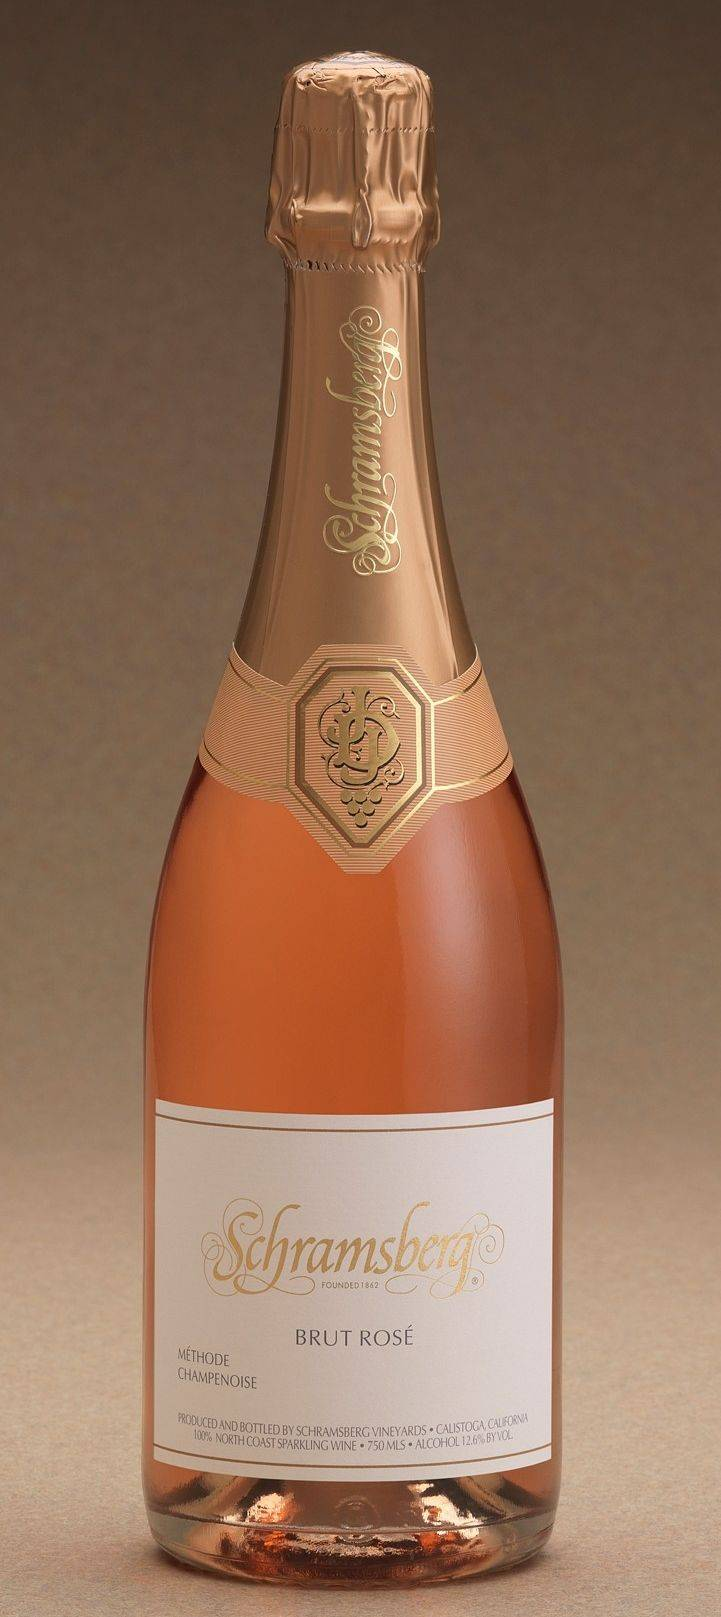 Schramsberg Brut Ros�, North Coast, Calif., 2009